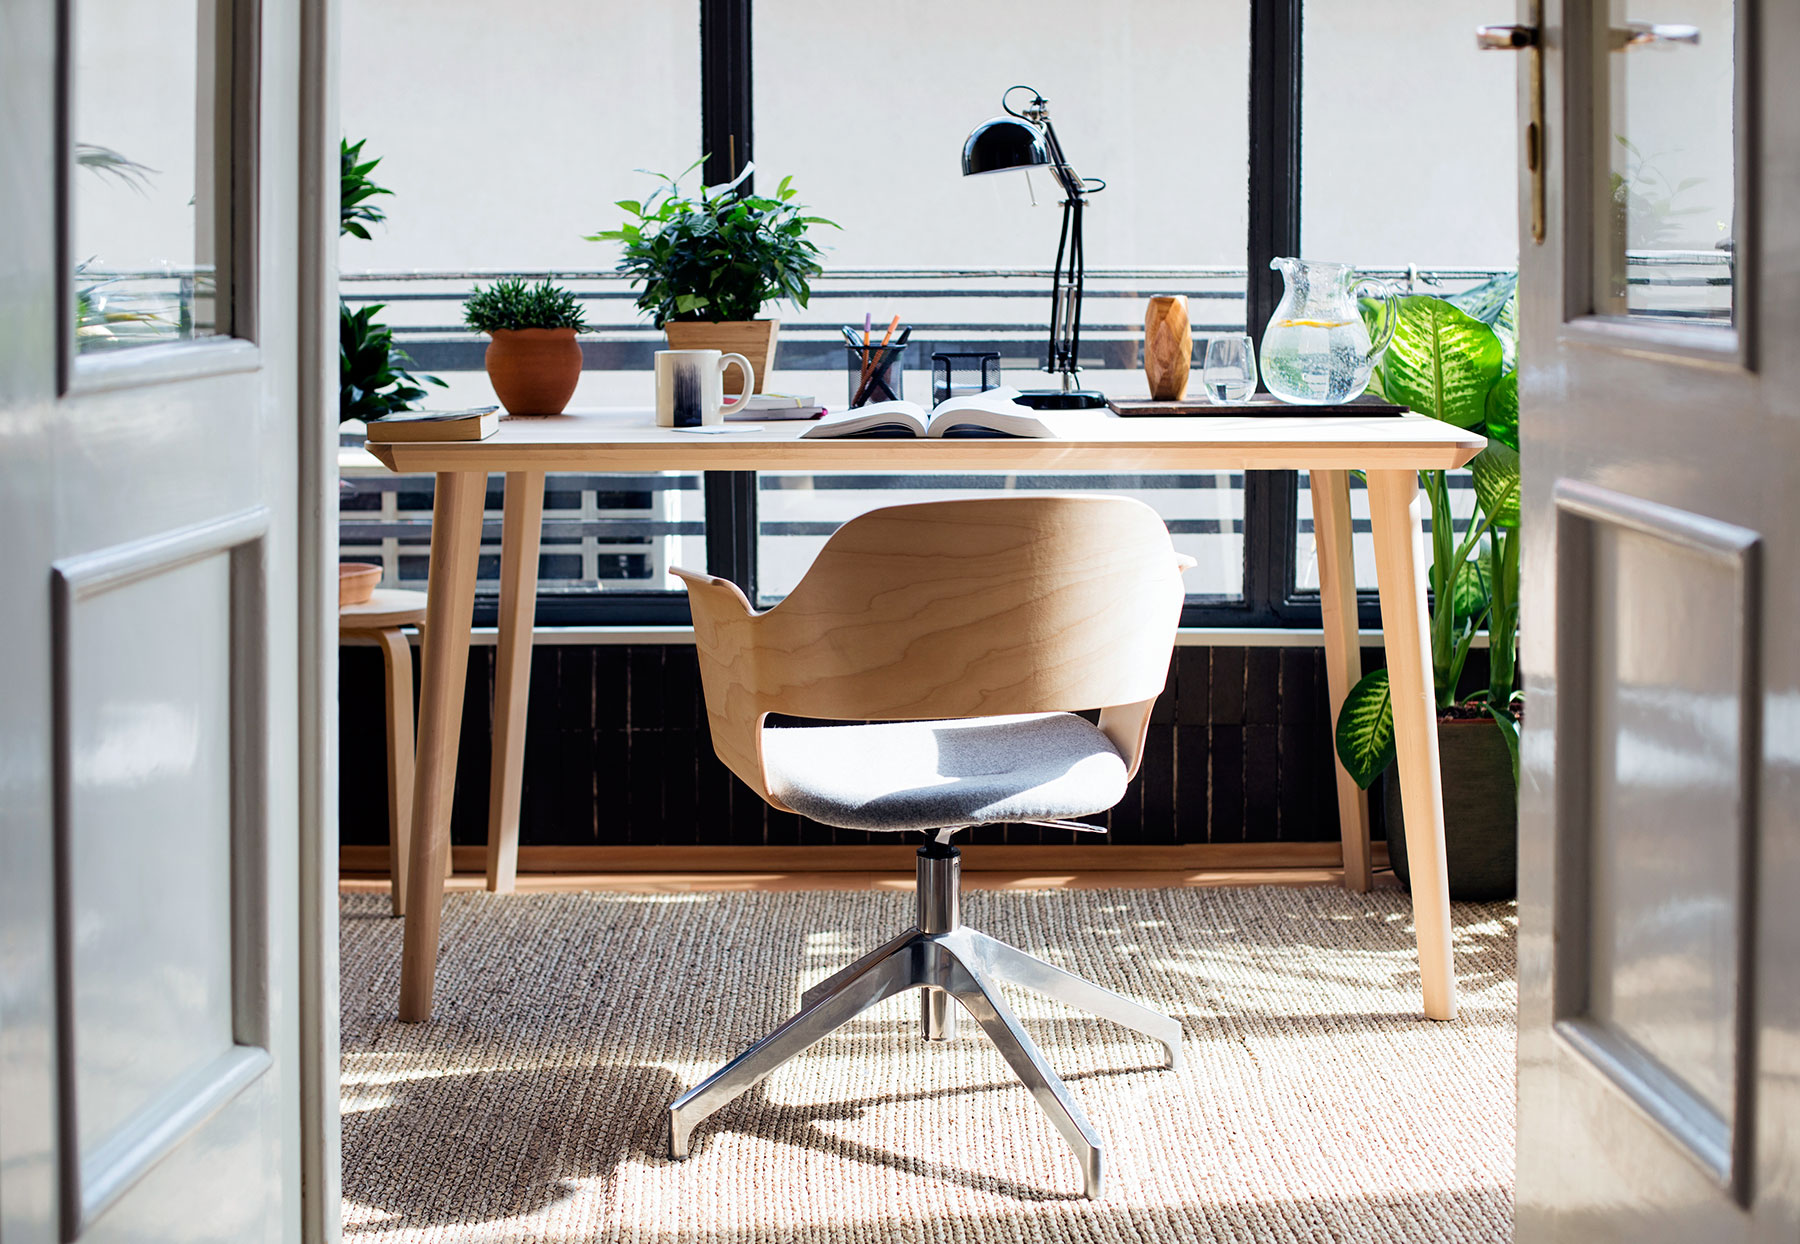 Superb 10 Home Office Ideas That Will Make You Want To Work All Day | Real Simple